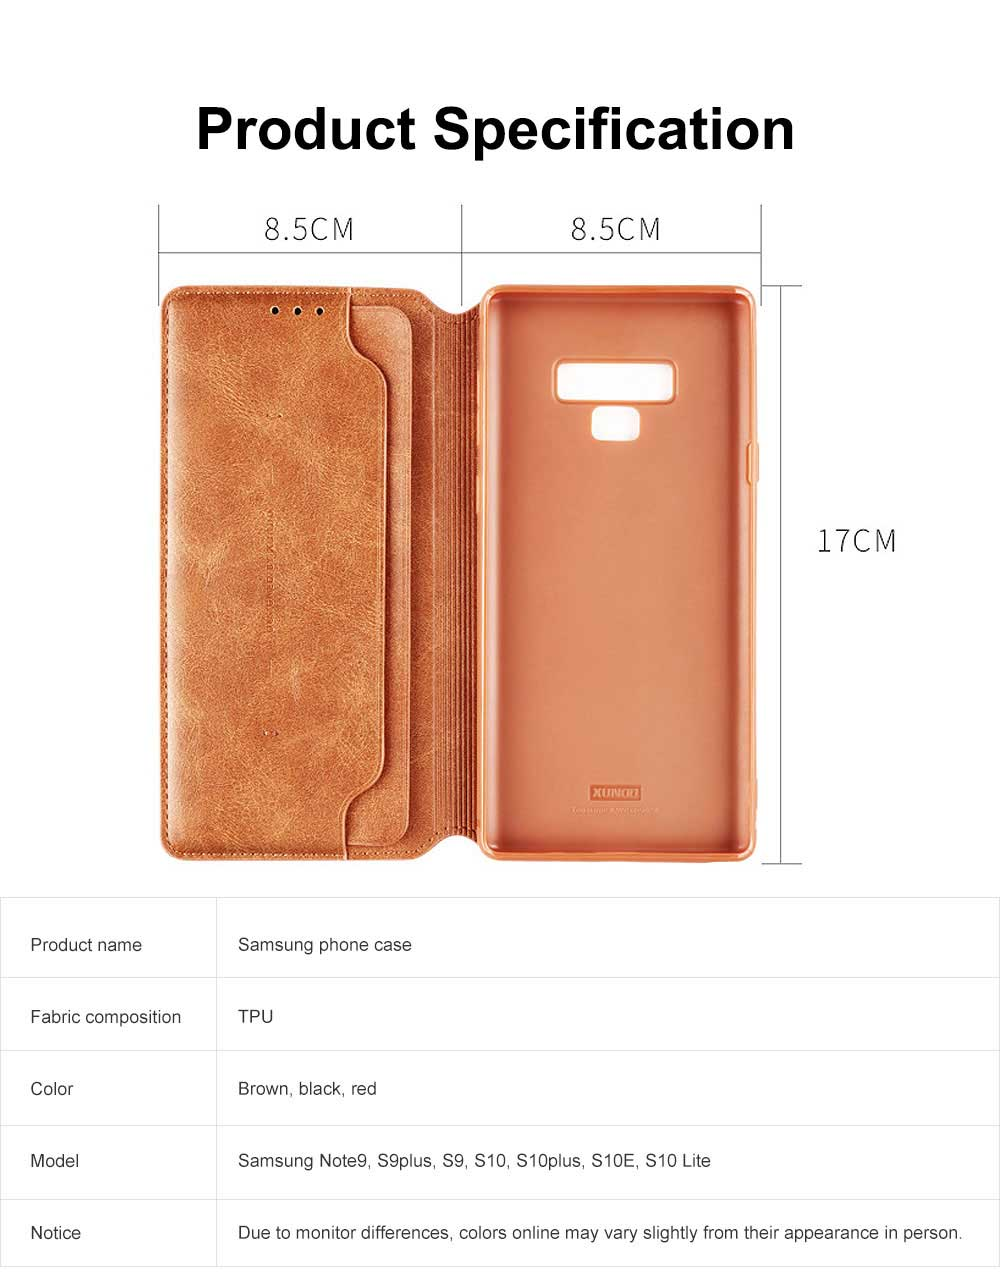 Soft TPU PU Leather Shockproof Protective Samsung Phone Case, Flip Case with Card Slot Samsung Soft Phone Cover for Samsung Galaxy Note 9, S9 plus, S9, S10, S10 plus, S10E, S10 Lite 5